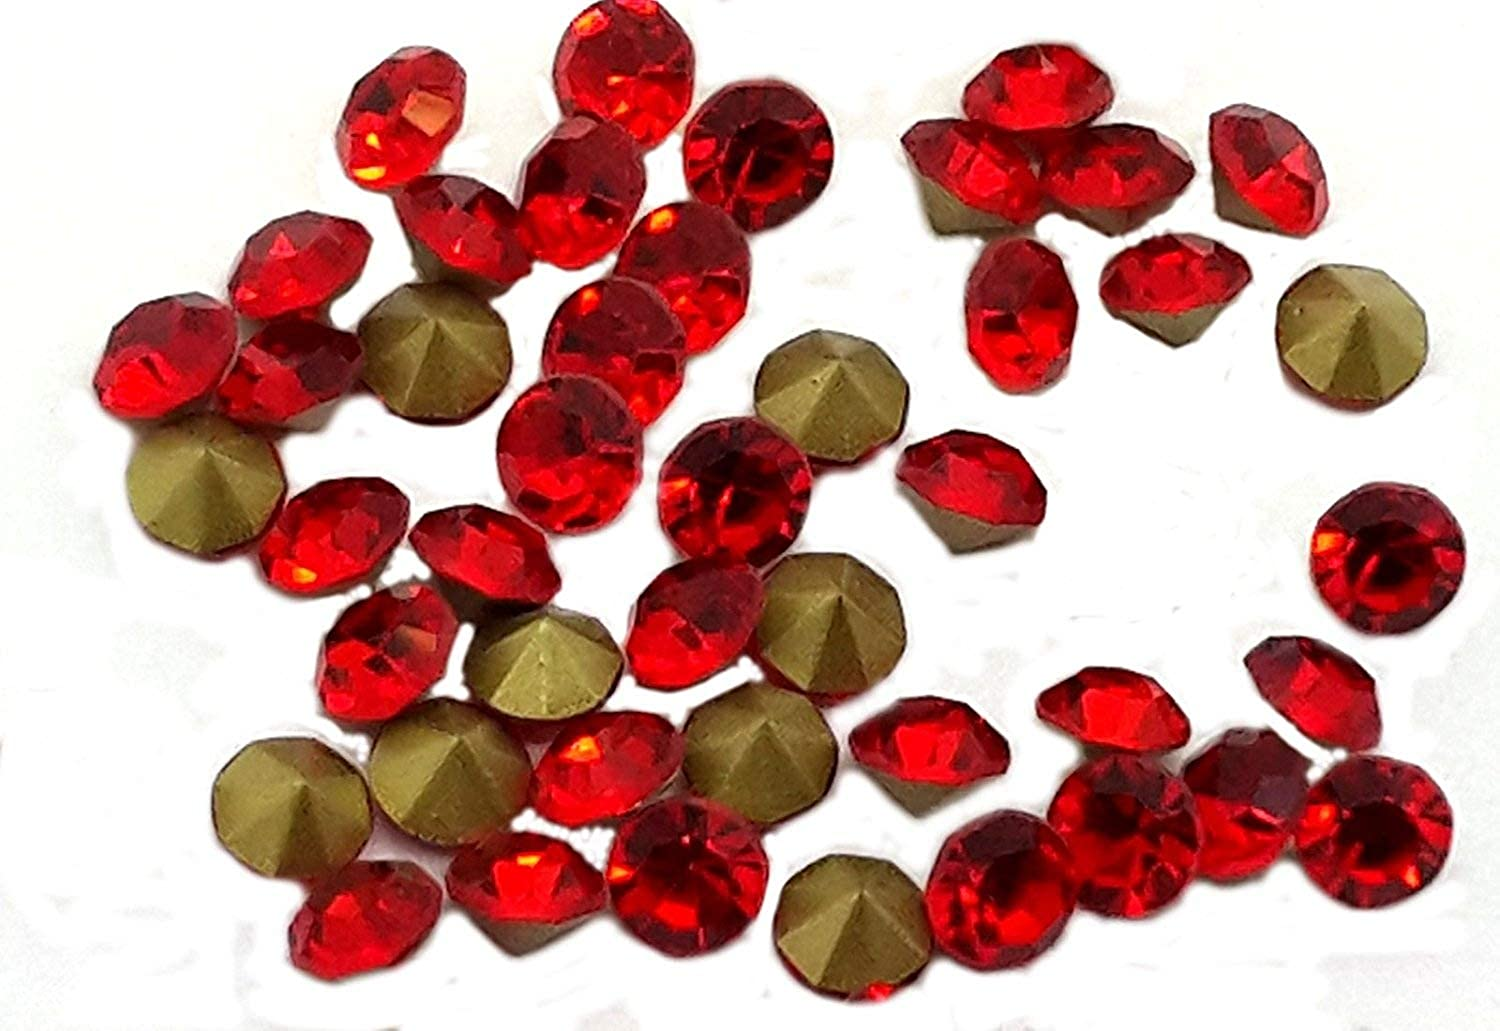 100 X (ss40 (8.4mm), Light Siam Bright Red), Foiled-back Crystals, EIMASS® Point-back Cut Diamond Chatons, Glass Crystals, Glass Rhinestones, Glass Gems, Pack of 100 Diamante